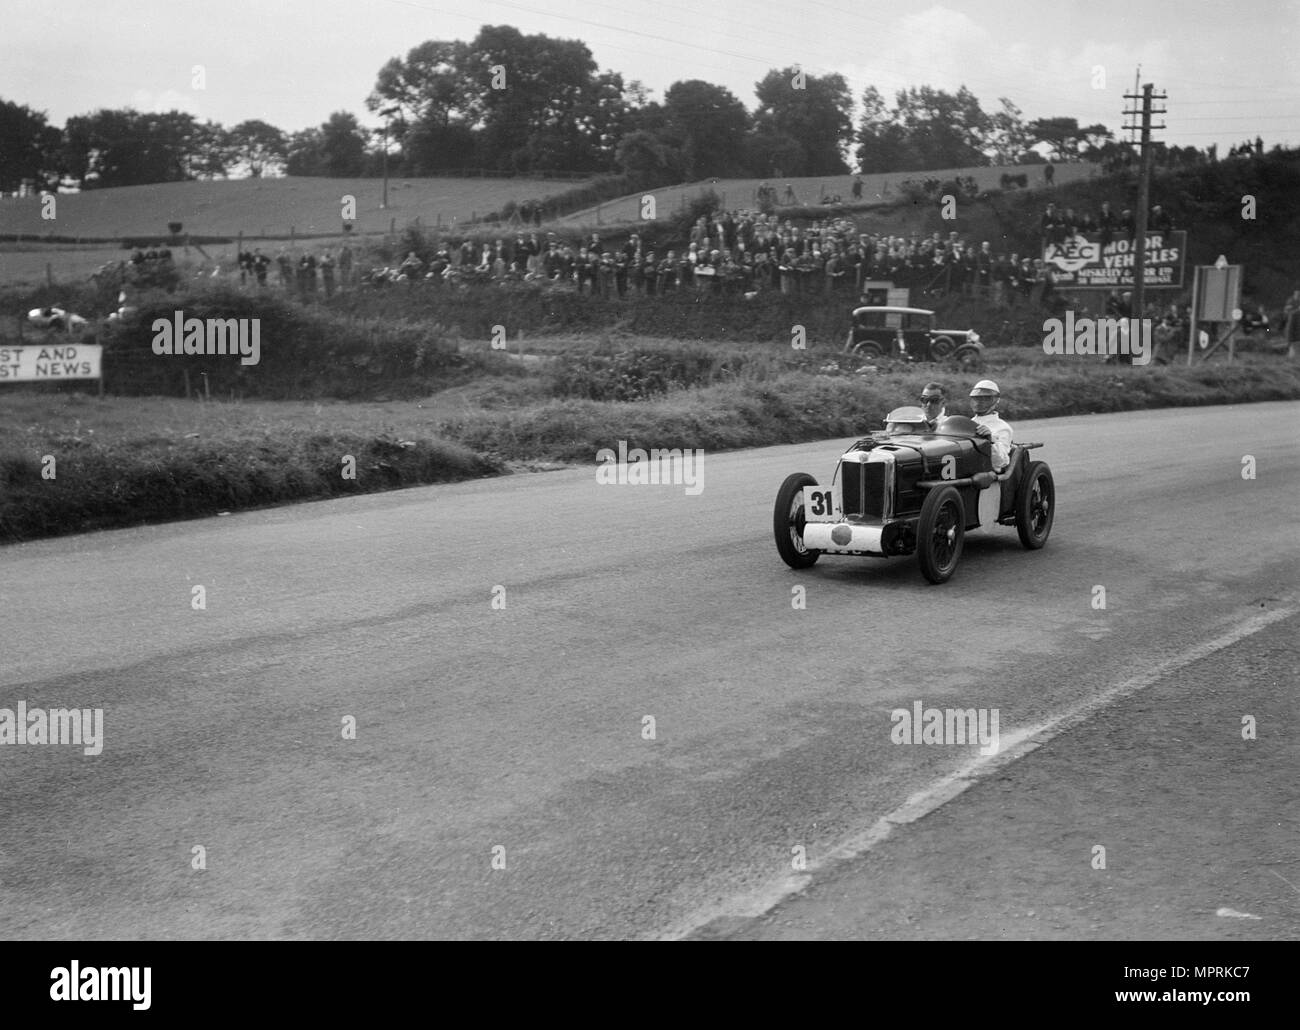 MG C type Midget of Cyril Paul competing in the RAC TT Race, Ards Circuit, Belfast, 1932. Artist: Bill Brunell. - Stock Image